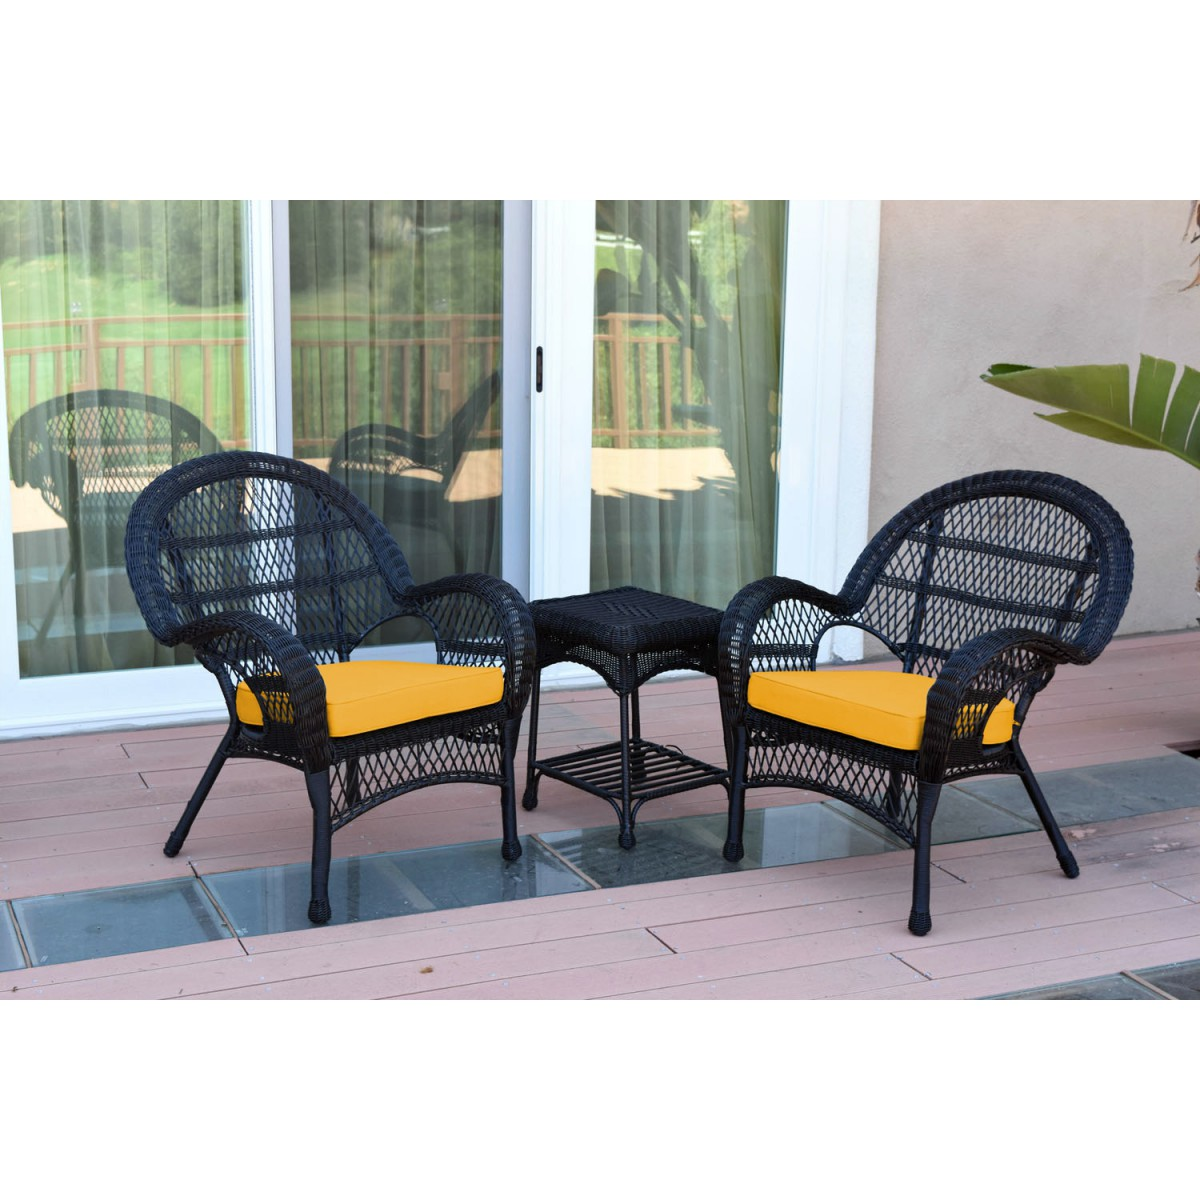 image black wicker outdoor furniture. Image Black Wicker Outdoor Furniture